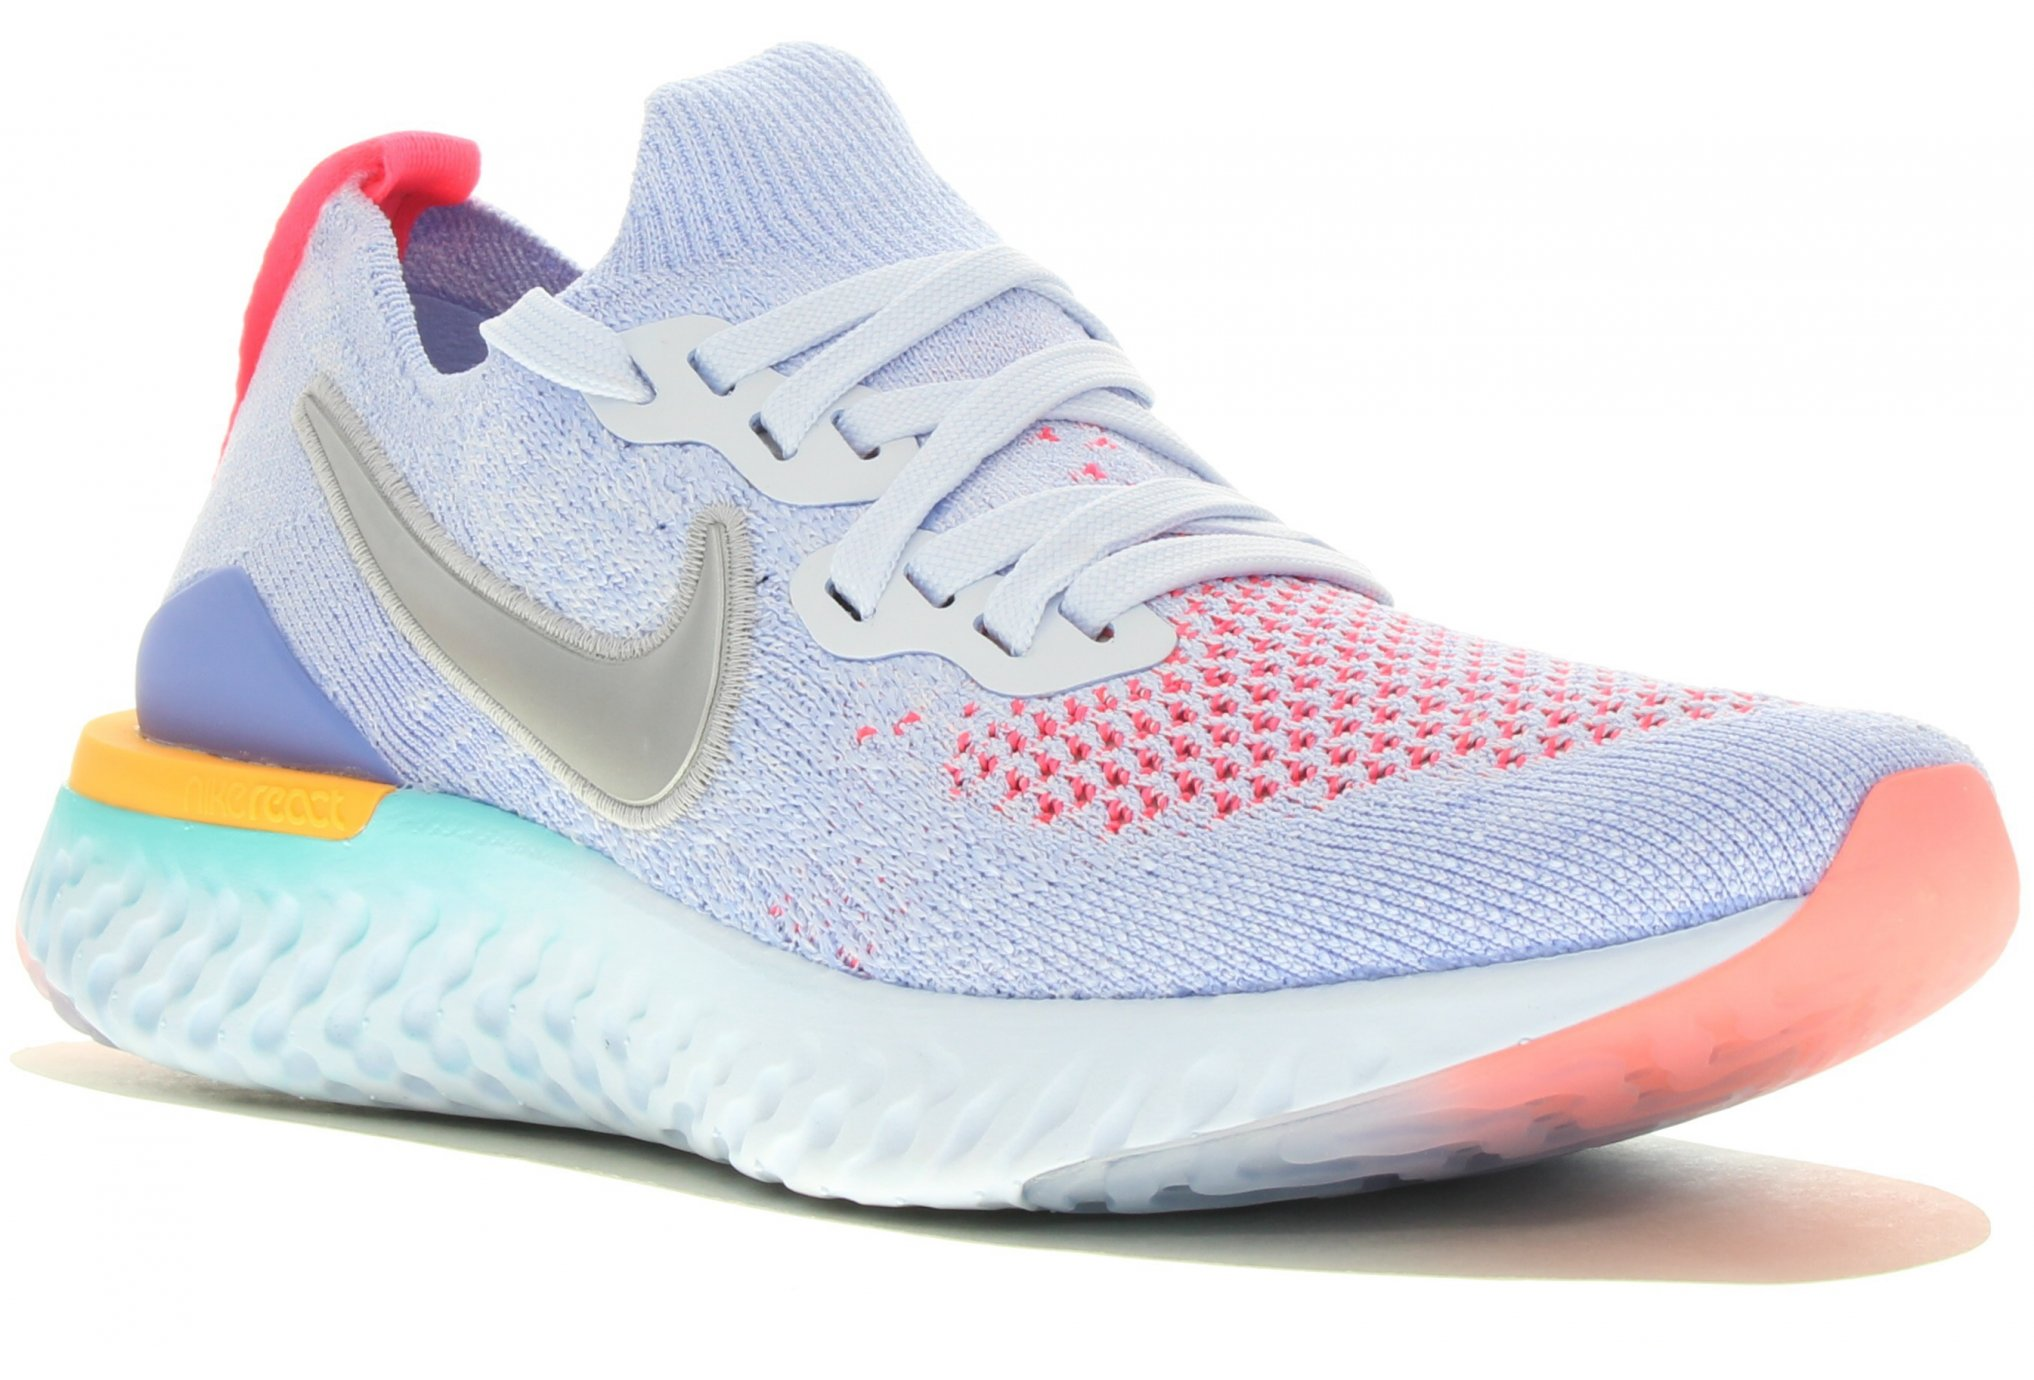 Nike Epic React Flyknit 2 Fille Chaussures running femme